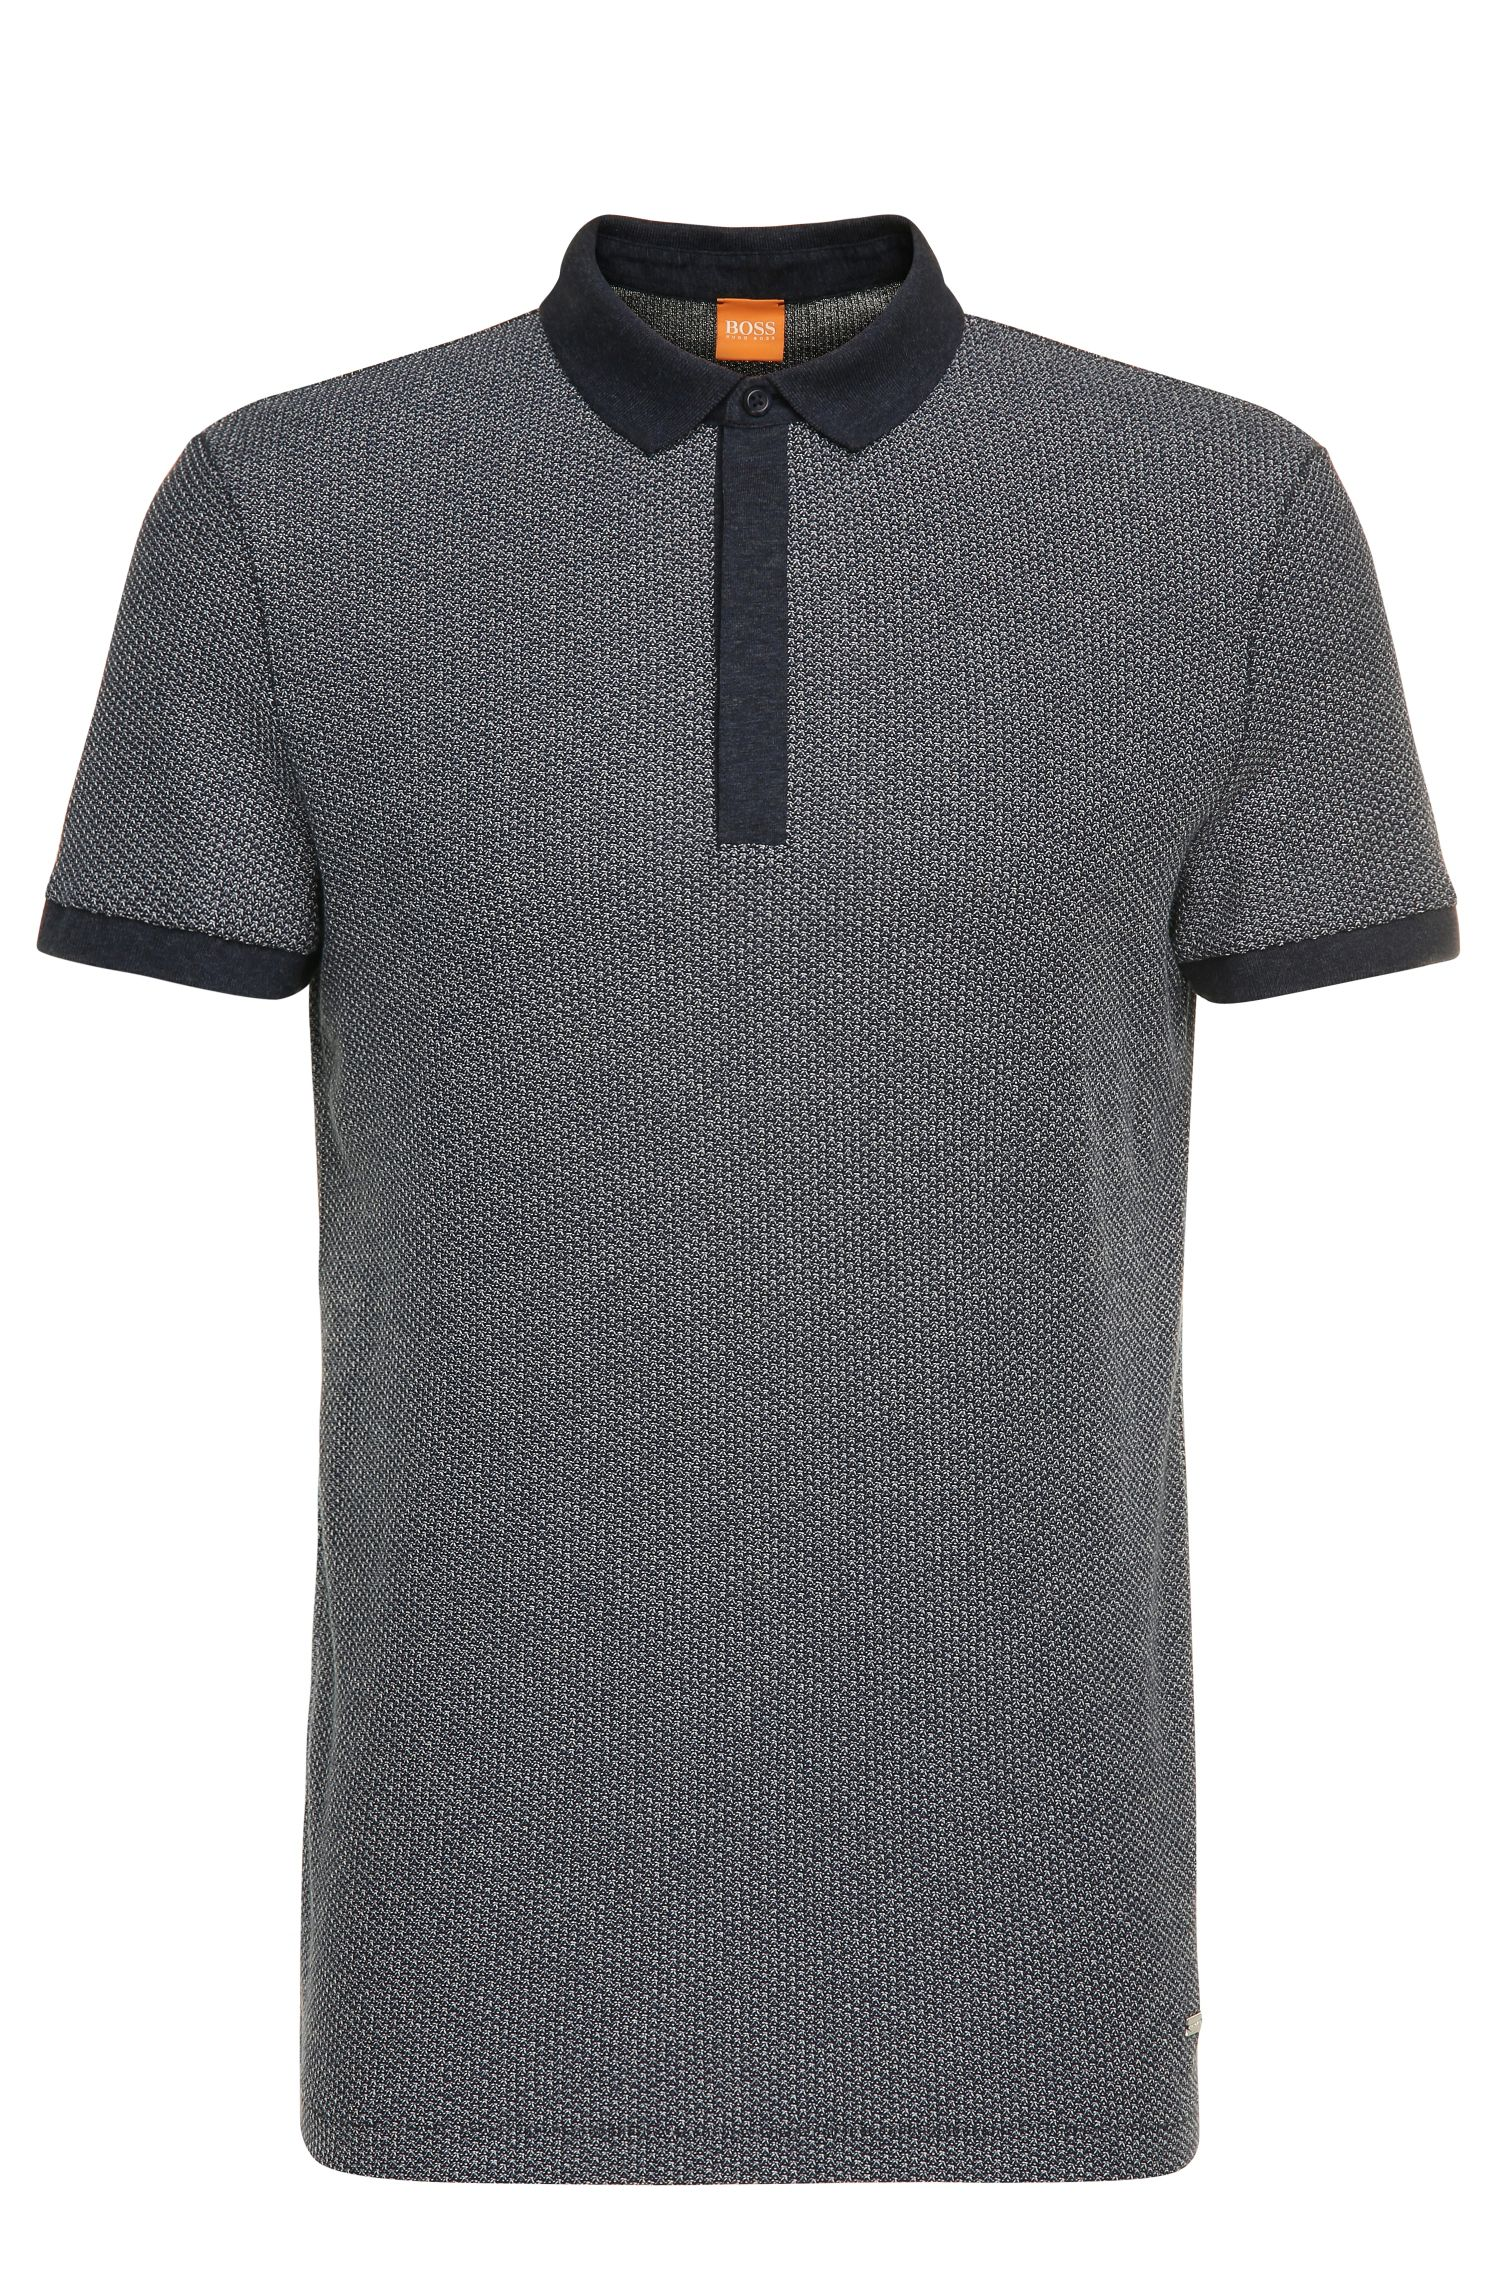 Cotton polo shirt in Jacquard look: 'Persys'